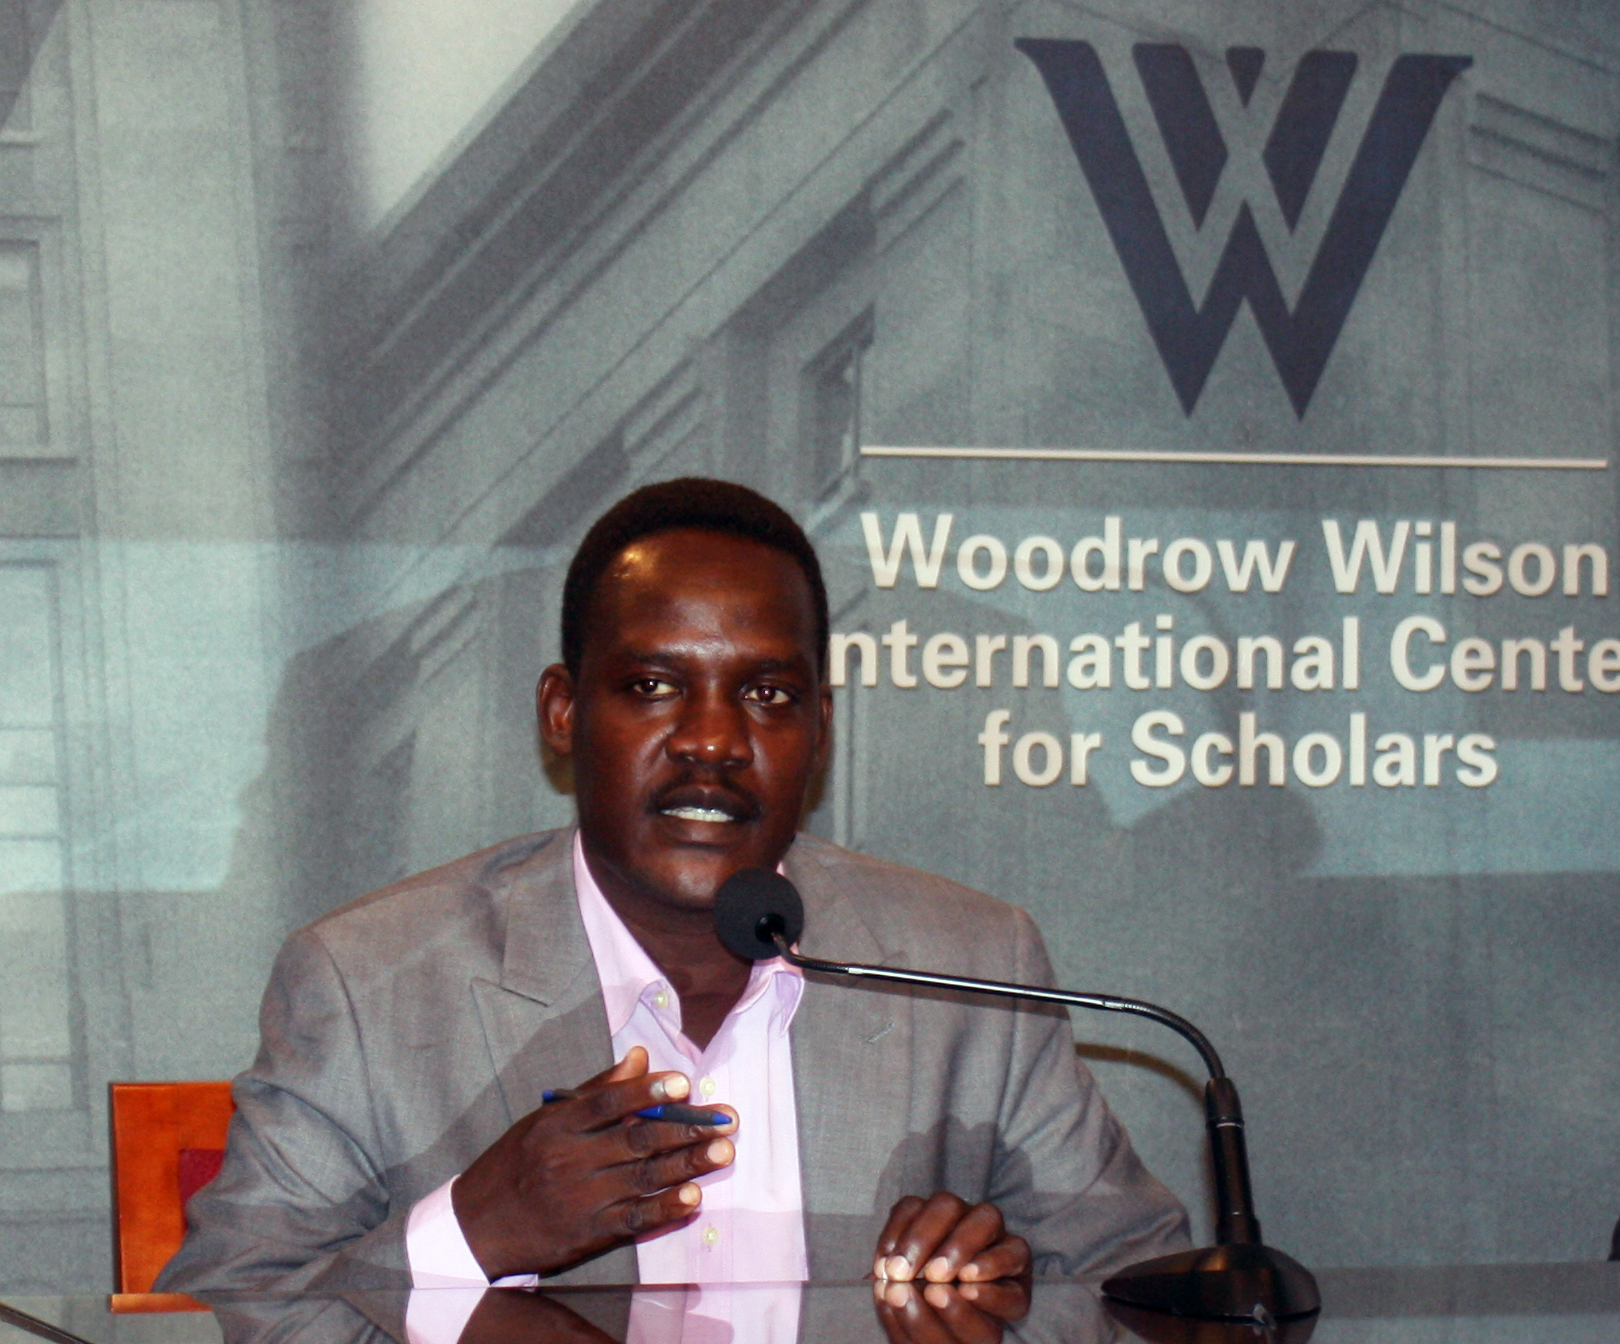 Rudwan Dawod: The Face of Sudan's Non-Violent Revolution